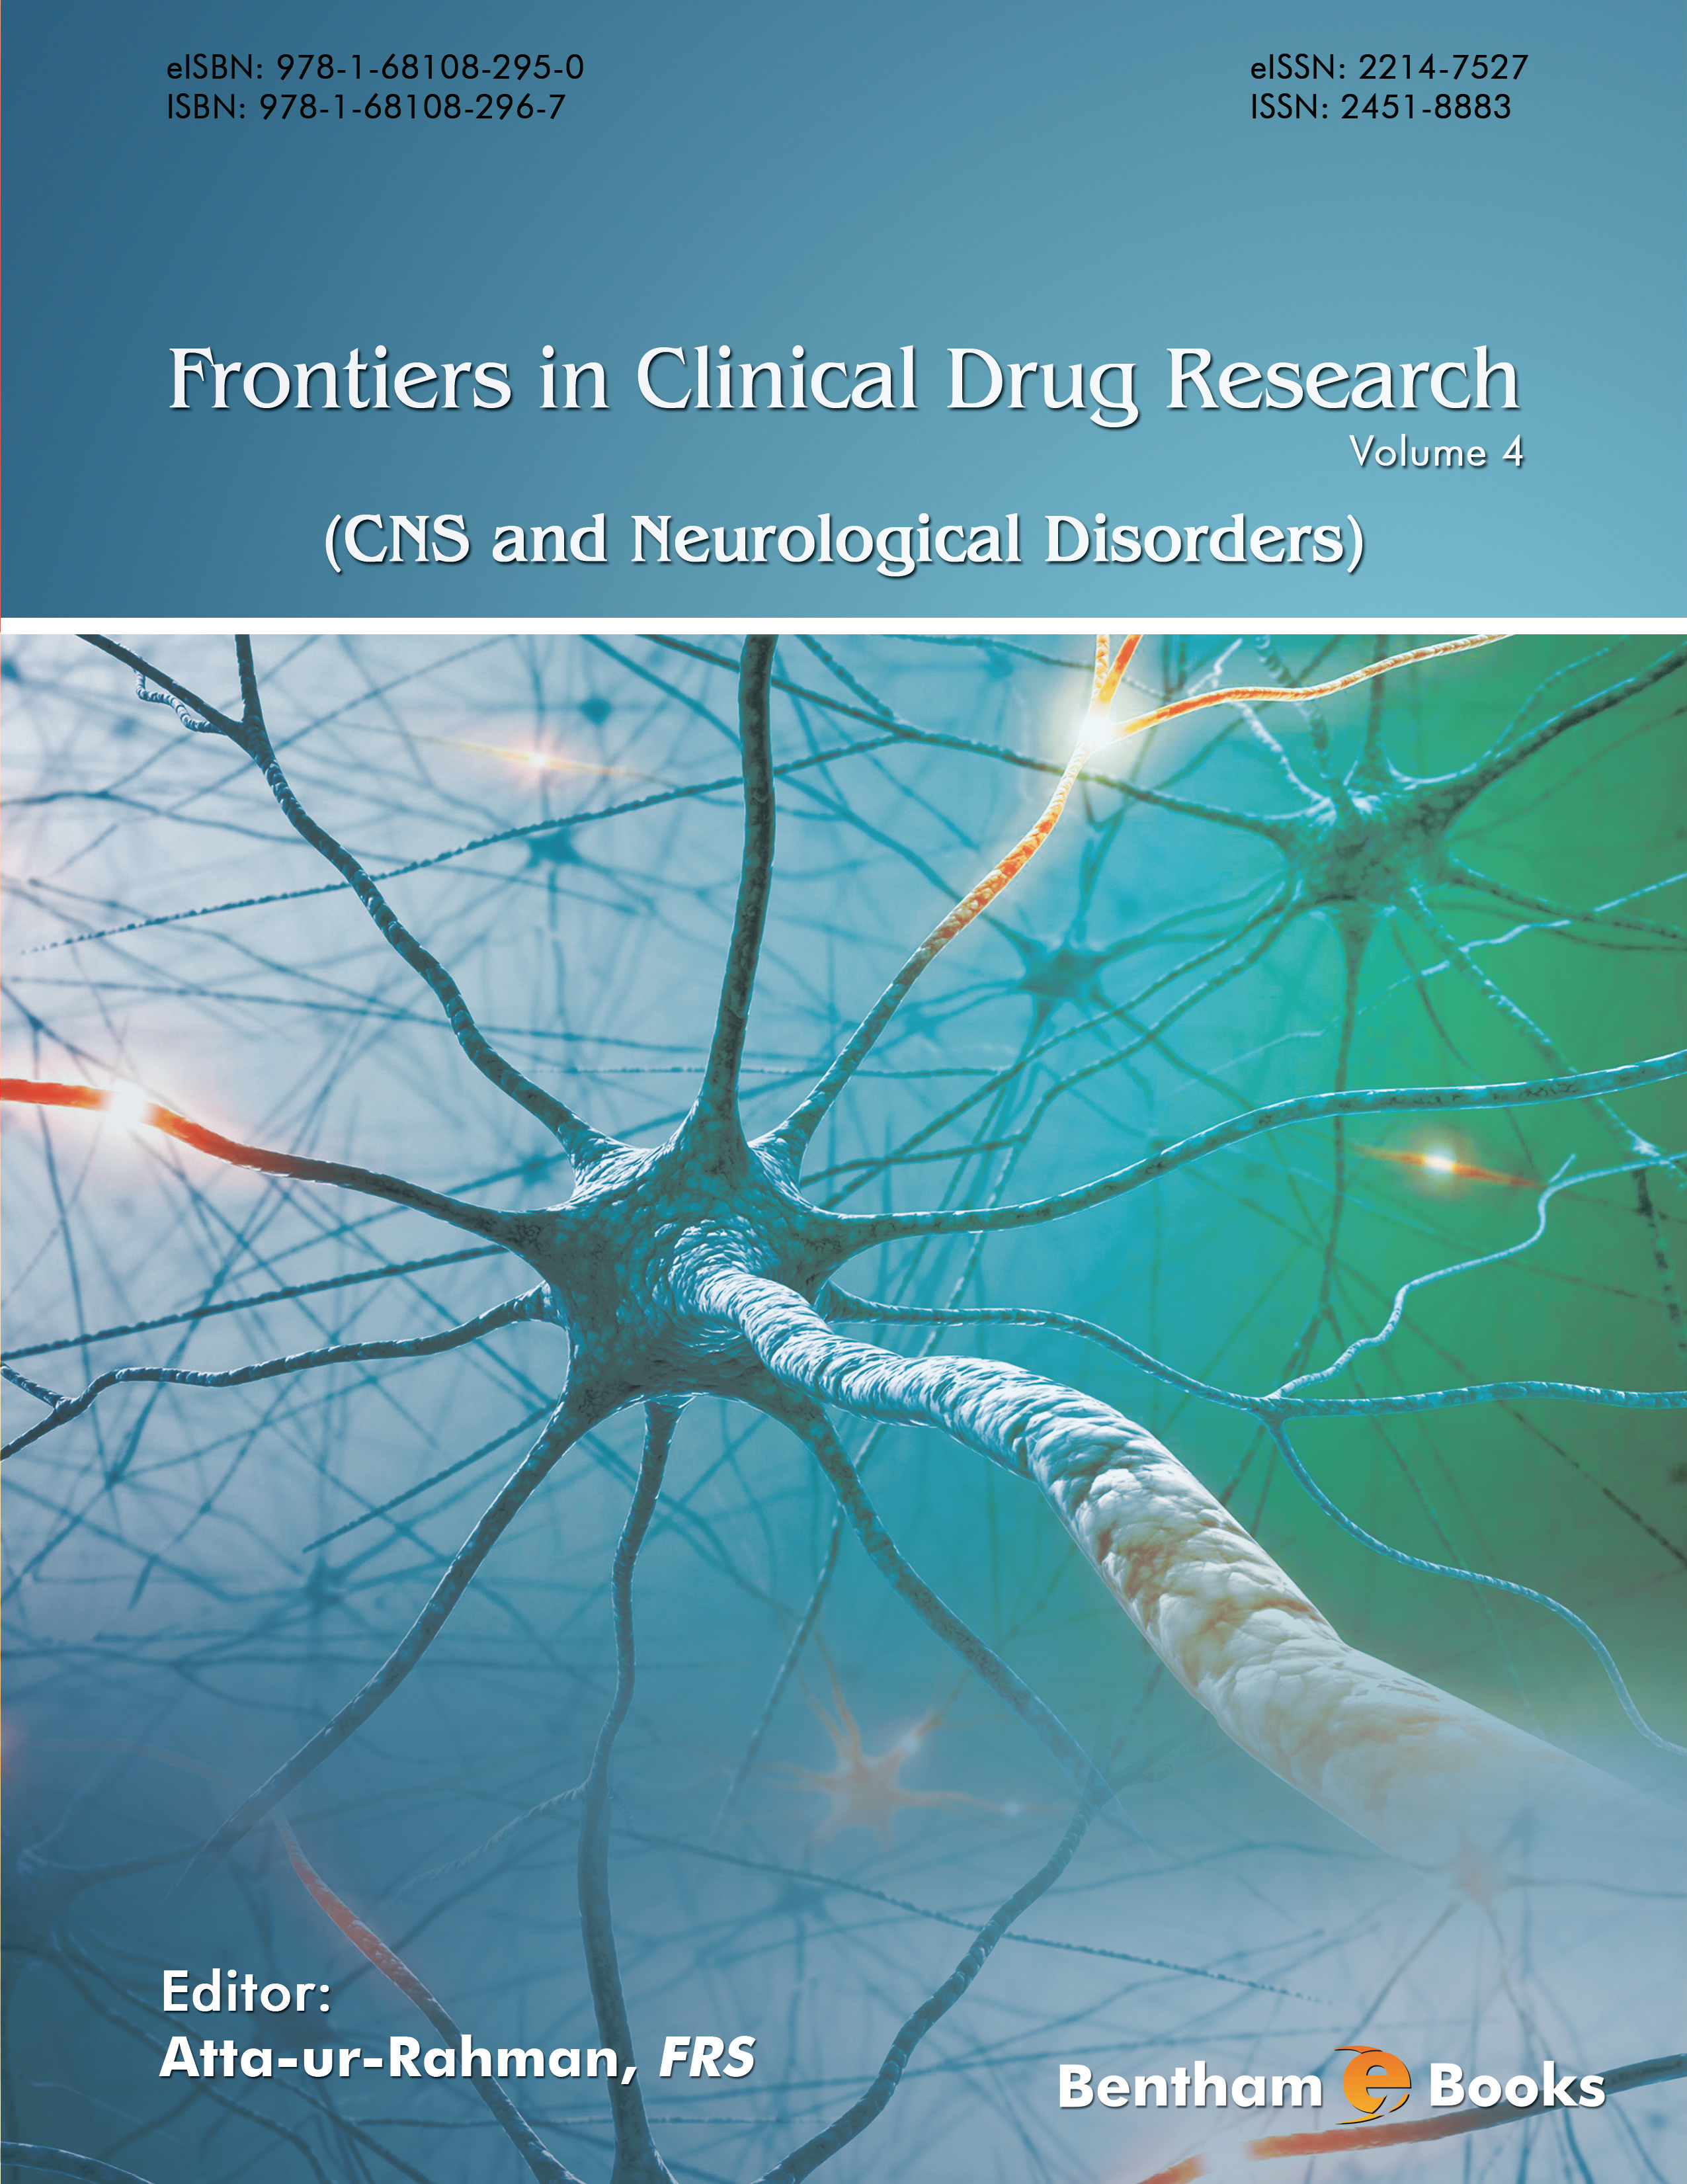 Frontiers in Clinical Drug Research -CNS and Neurological Disorders